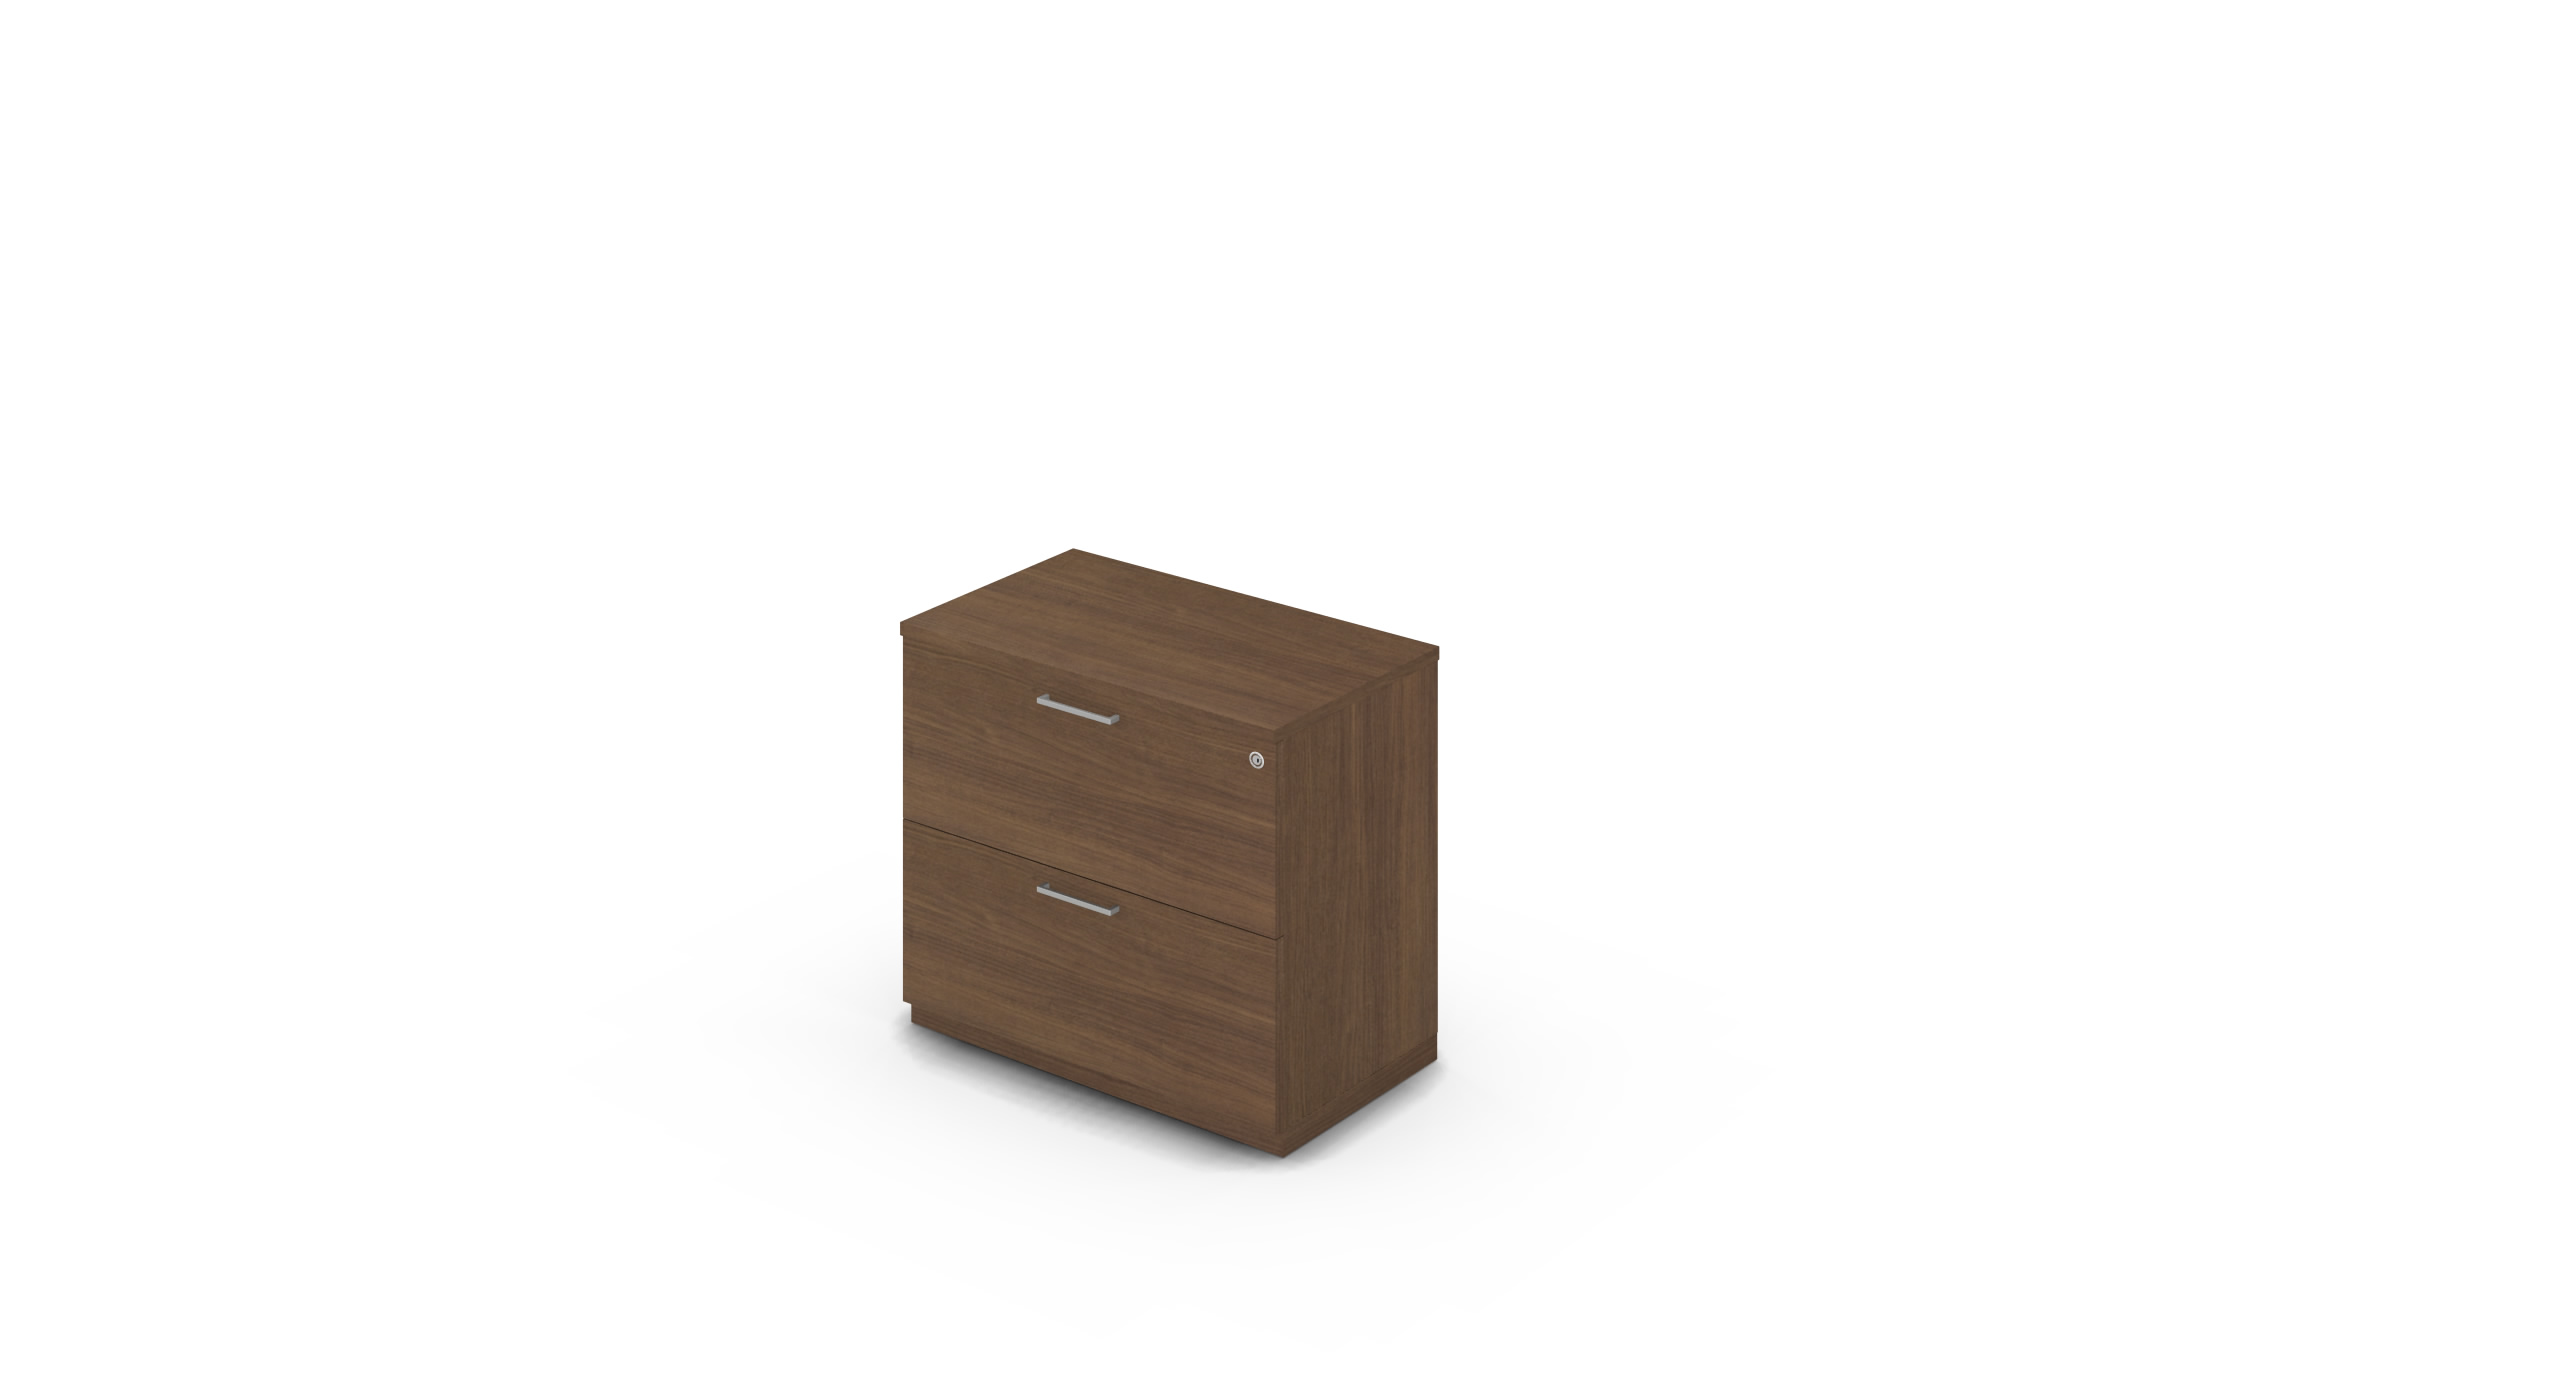 Cabinet_800x450x775_DR_Walnut_Bar_Square_WithCylinder